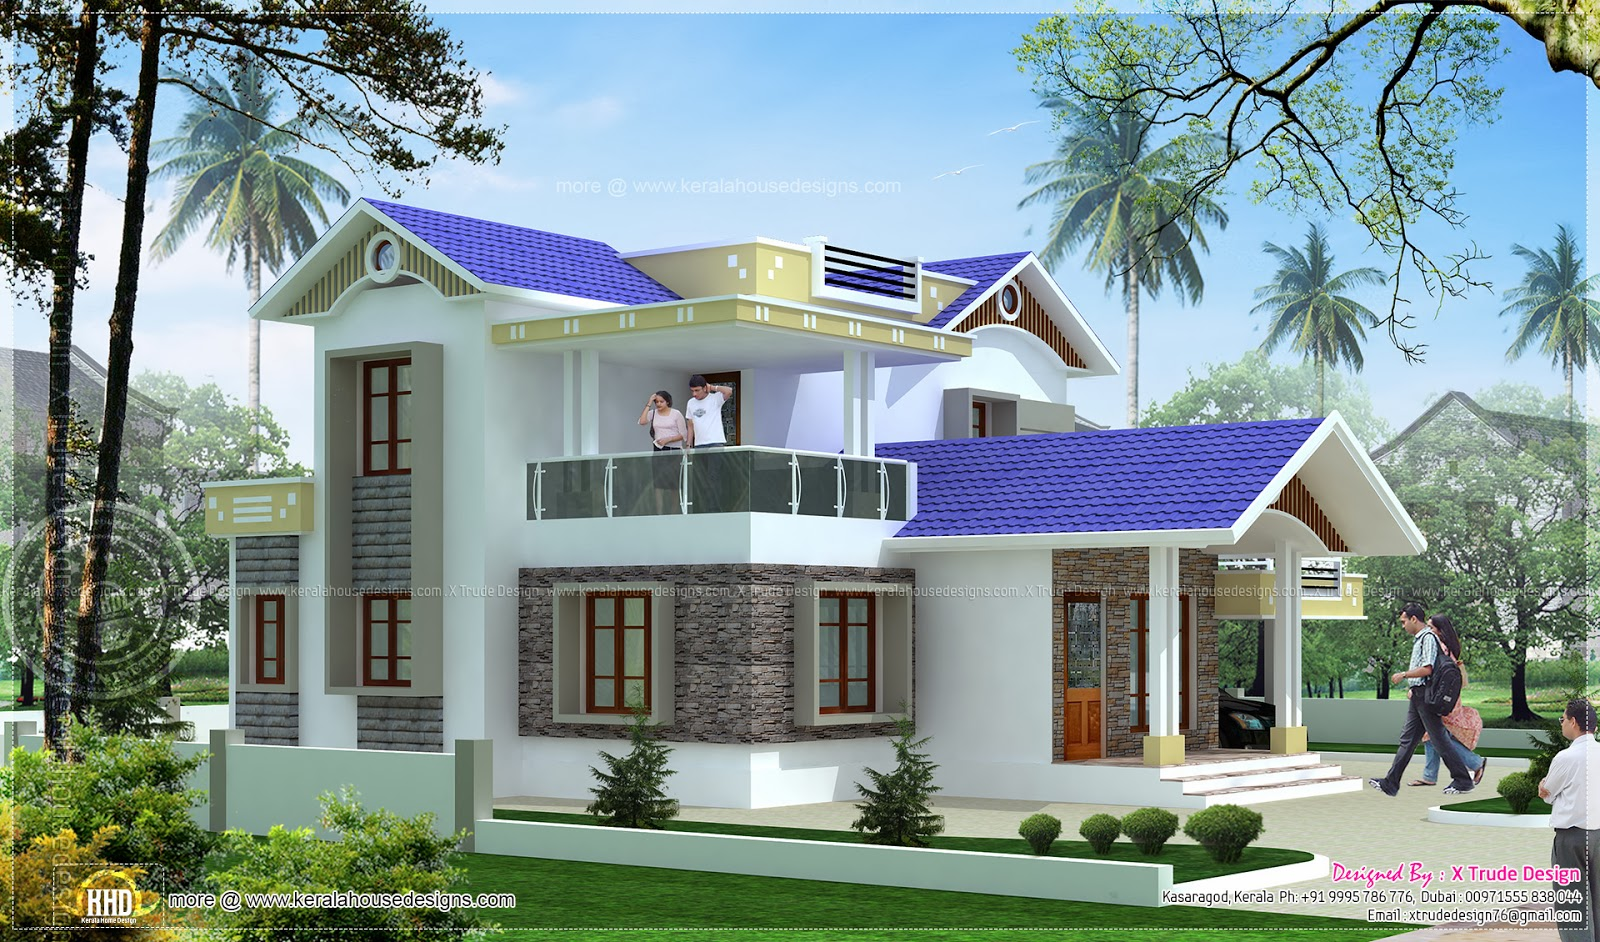 4 bedroom 1924 square feet house elevation kerala home design and floor plans - Design of home ...